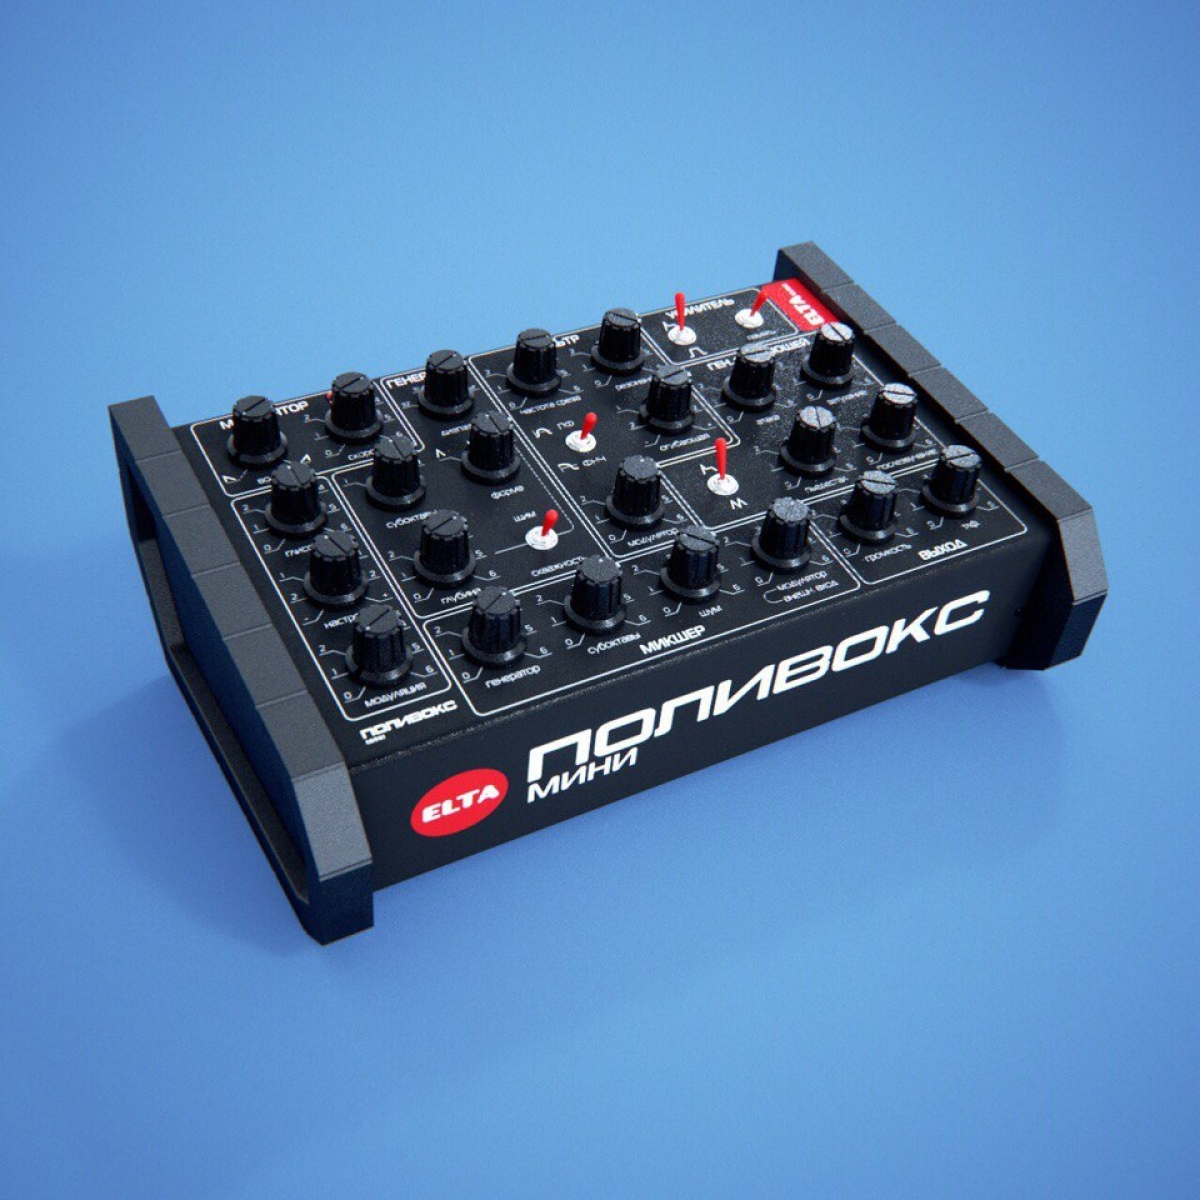 Behringer attempt to claim trademarks, including marks actively in use by KORG, Polivoks